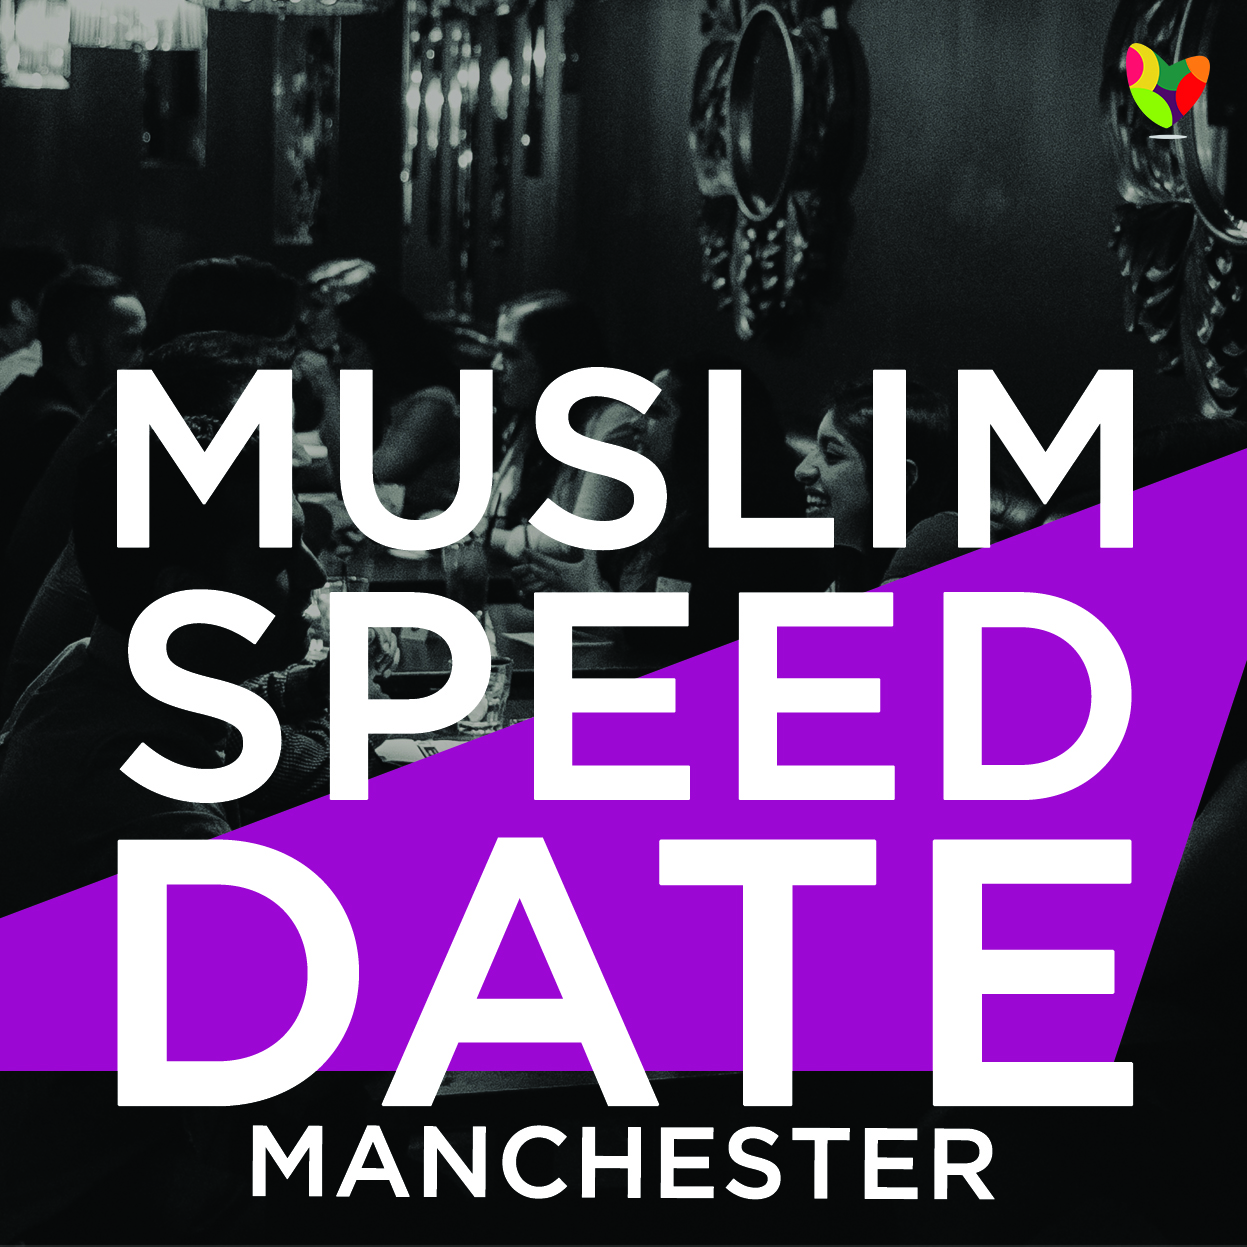 Arab dating manchester